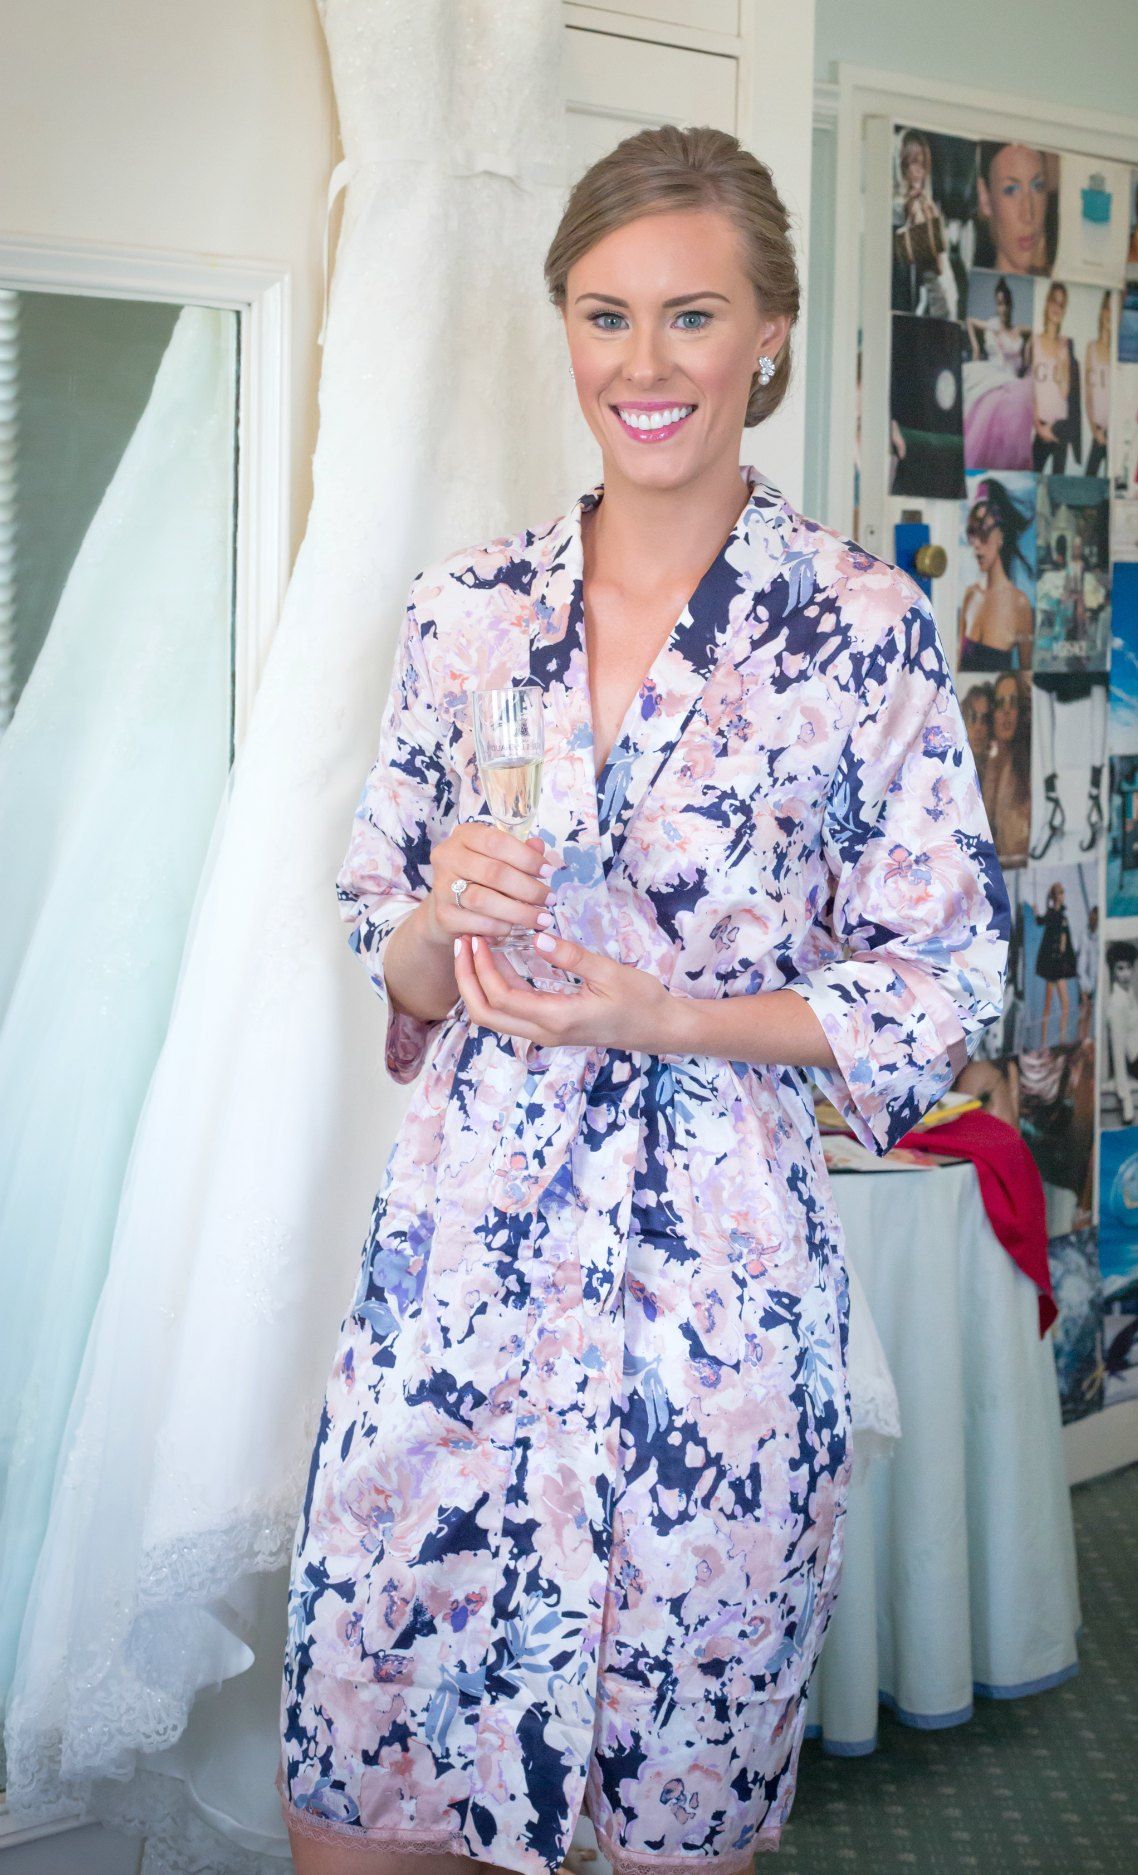 papinelle floral bridesmaid robes bride getting ready with champagne